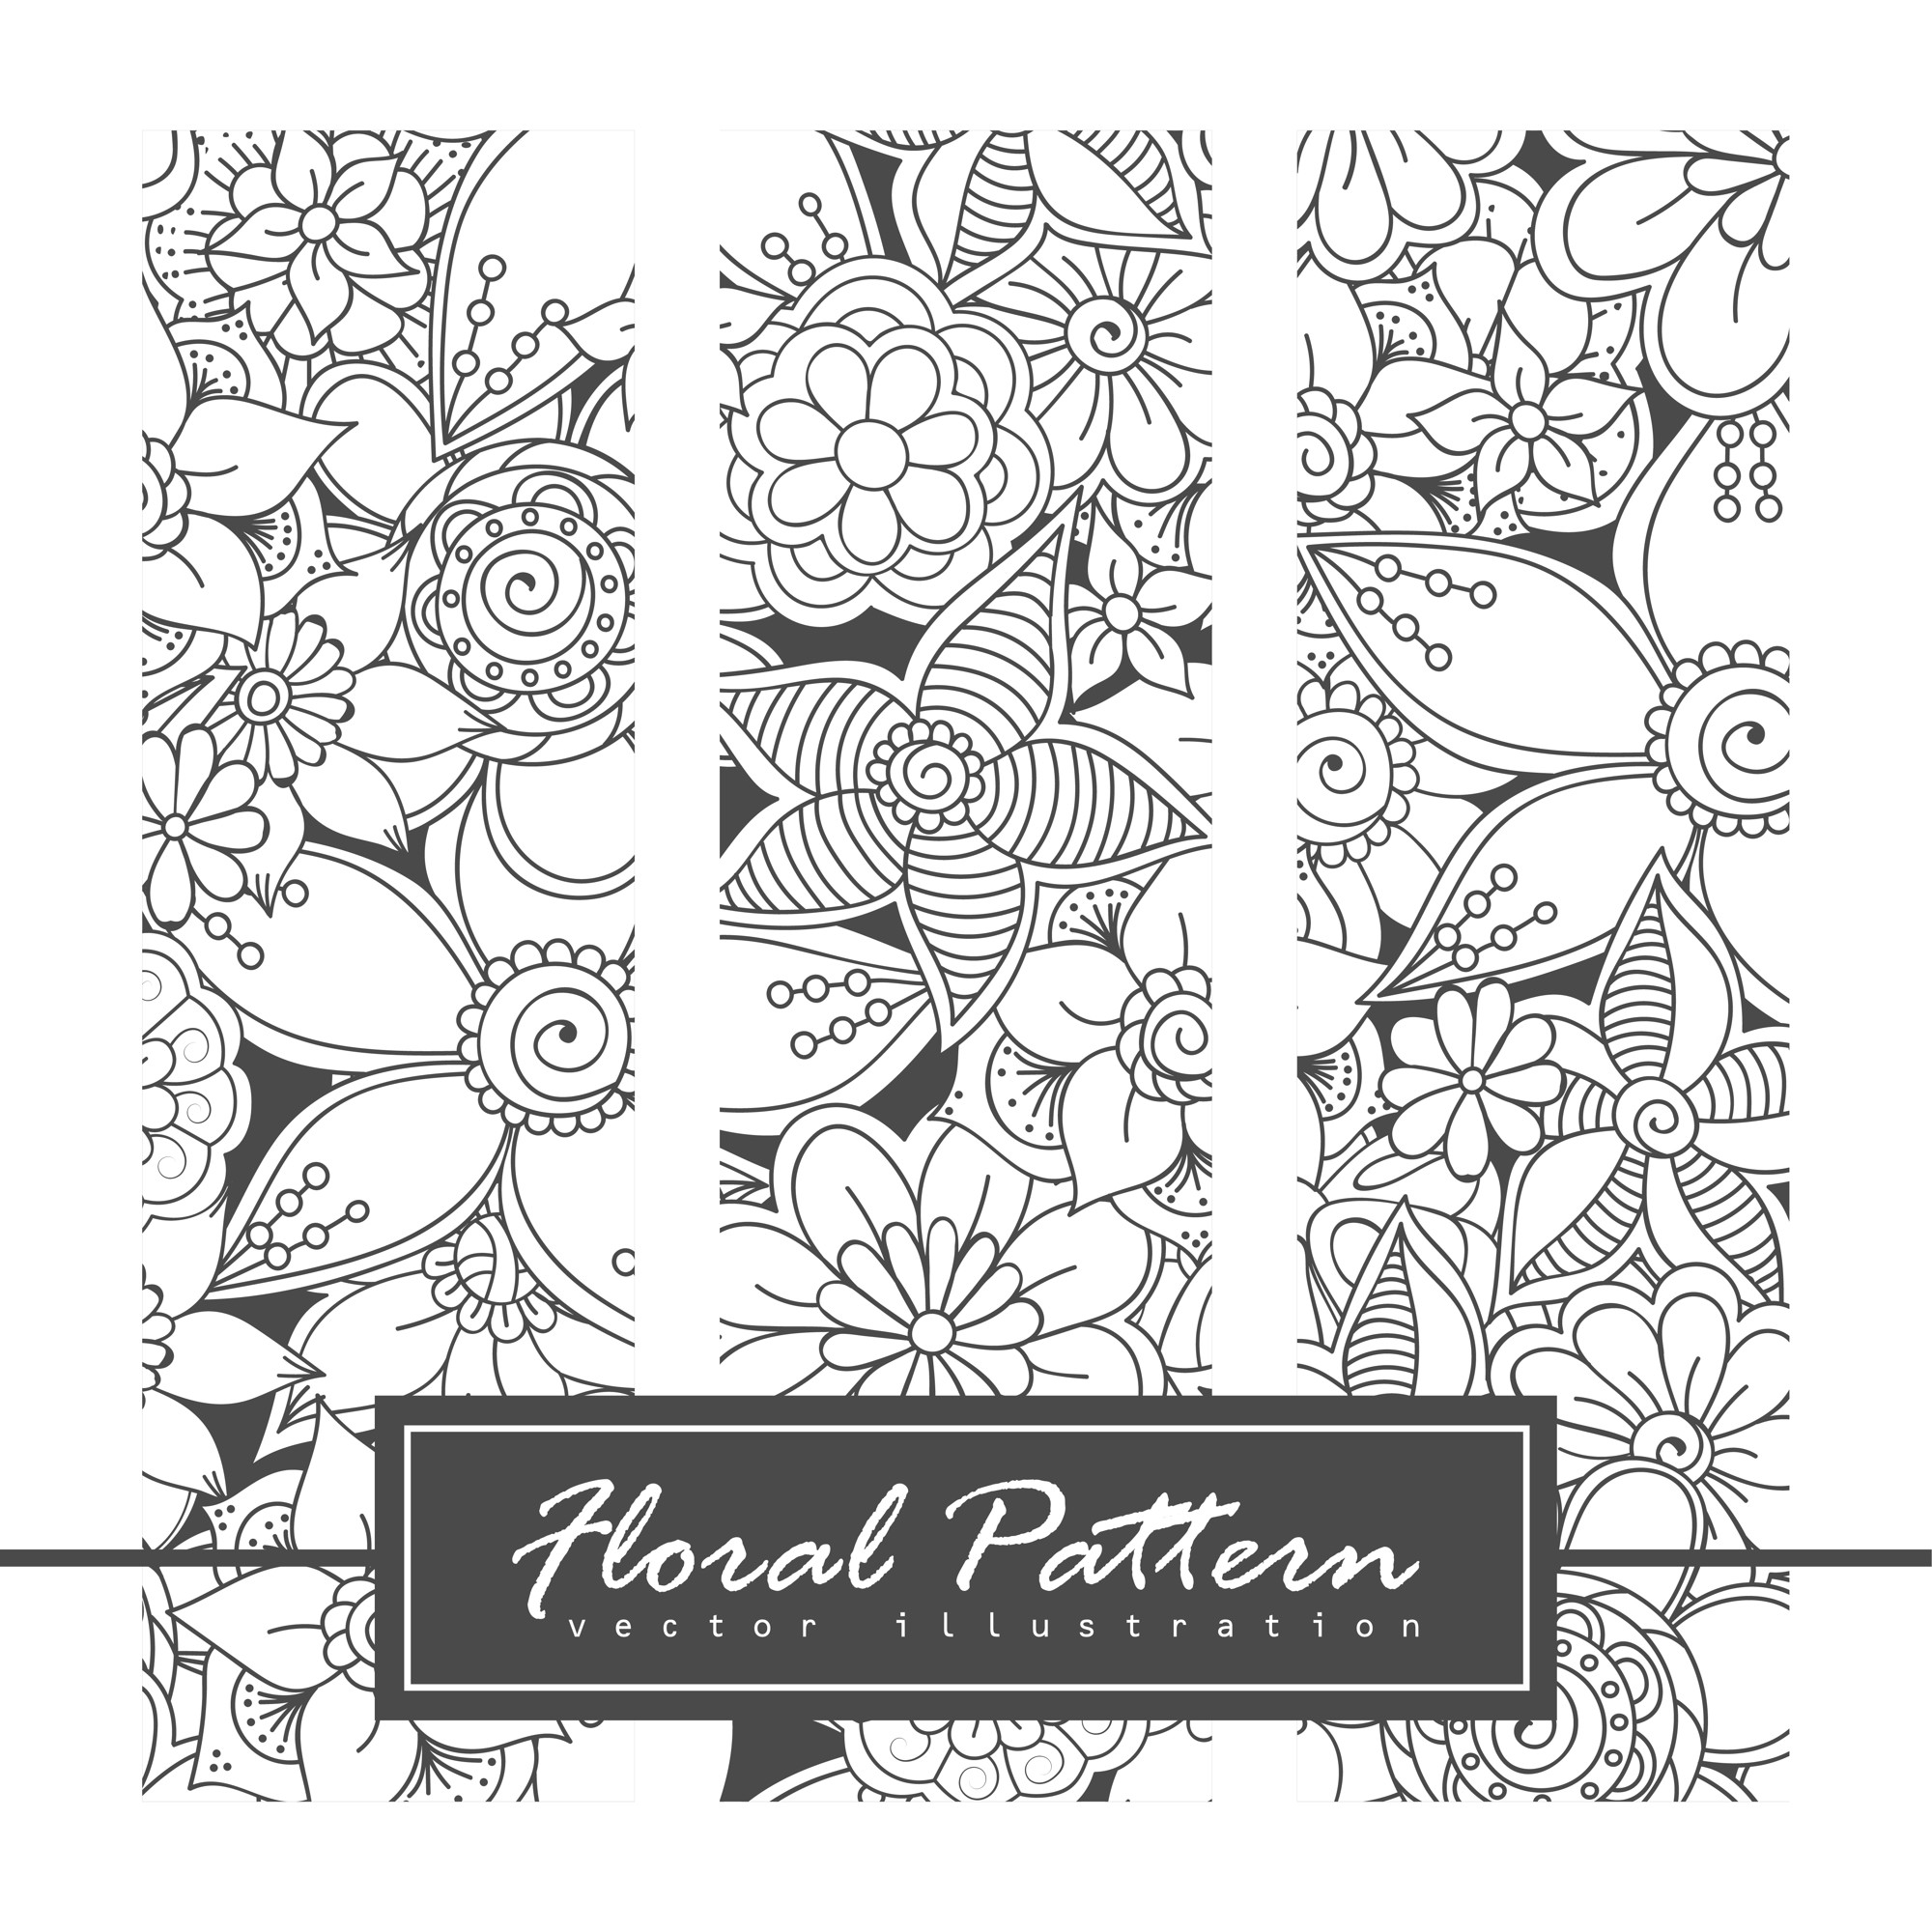 Vector zentangle patterns. Black and white abstract floral background.